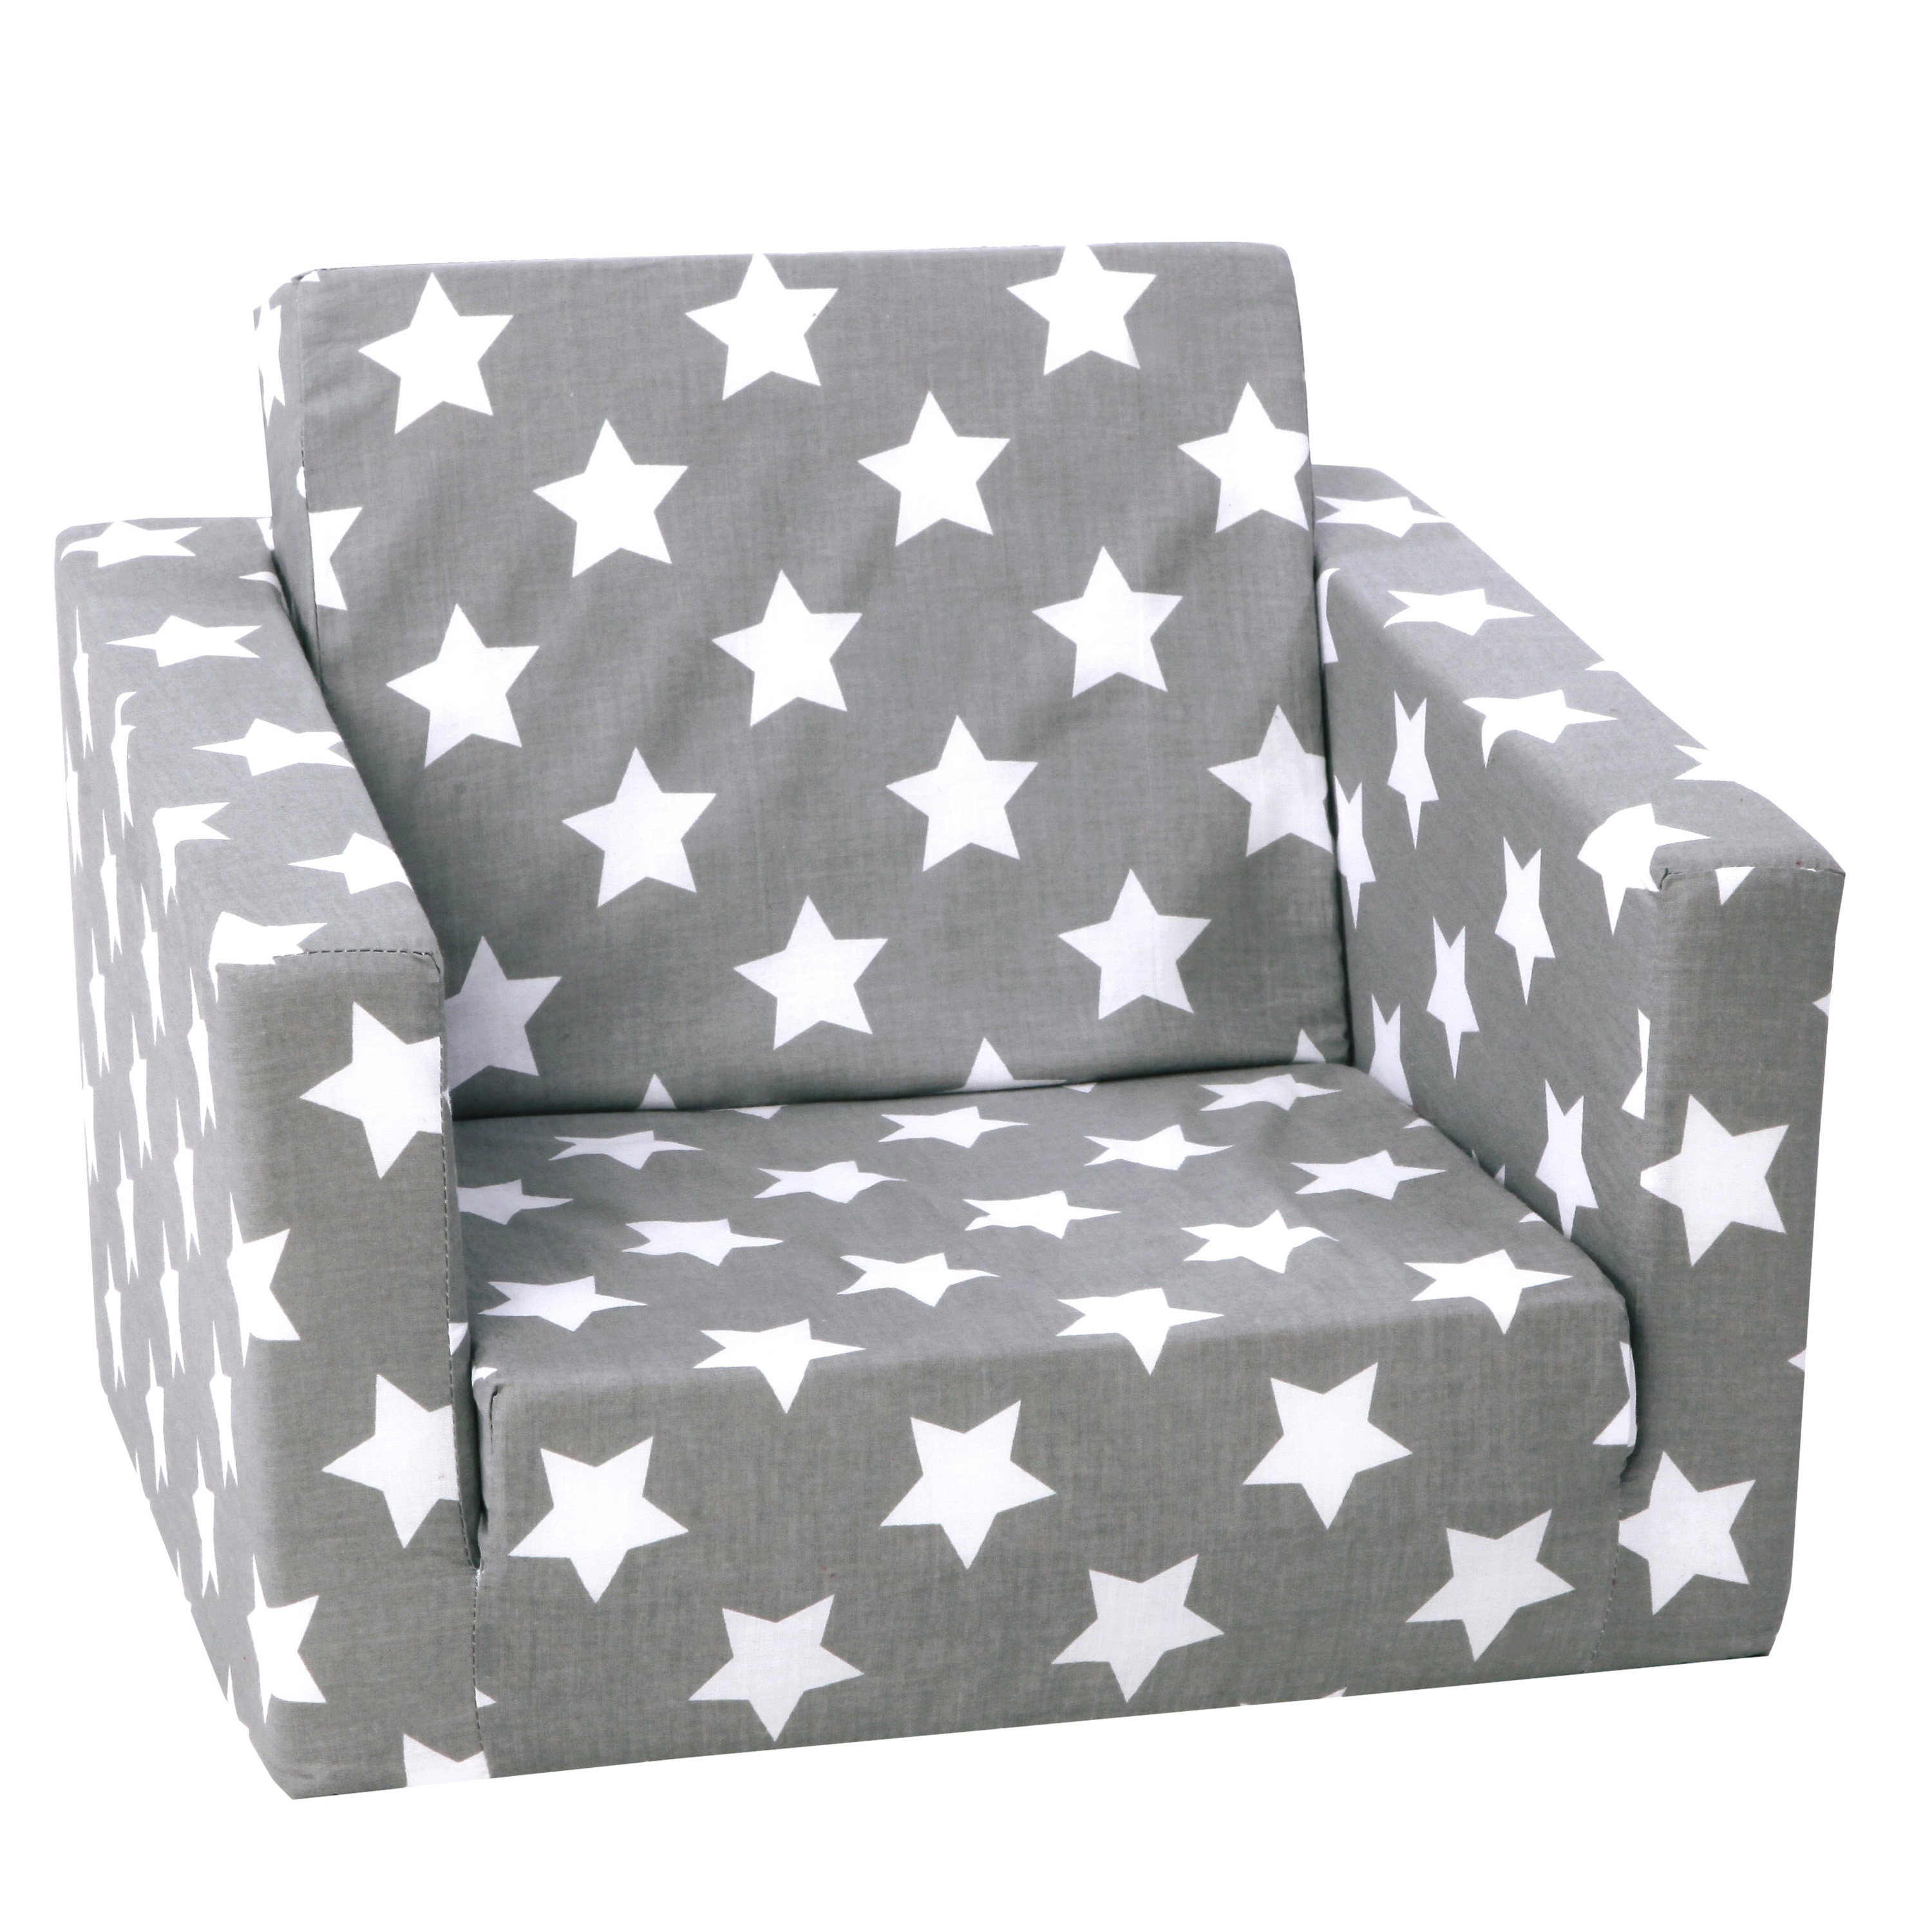 Delsit Toddler Chair Kids Sofa European Made Children S 2 In 1 Flip Open Foam Single Sofa Toddler Fold Out Chair Kids Couch Comfy Flip Out Lounge Gray With Stars